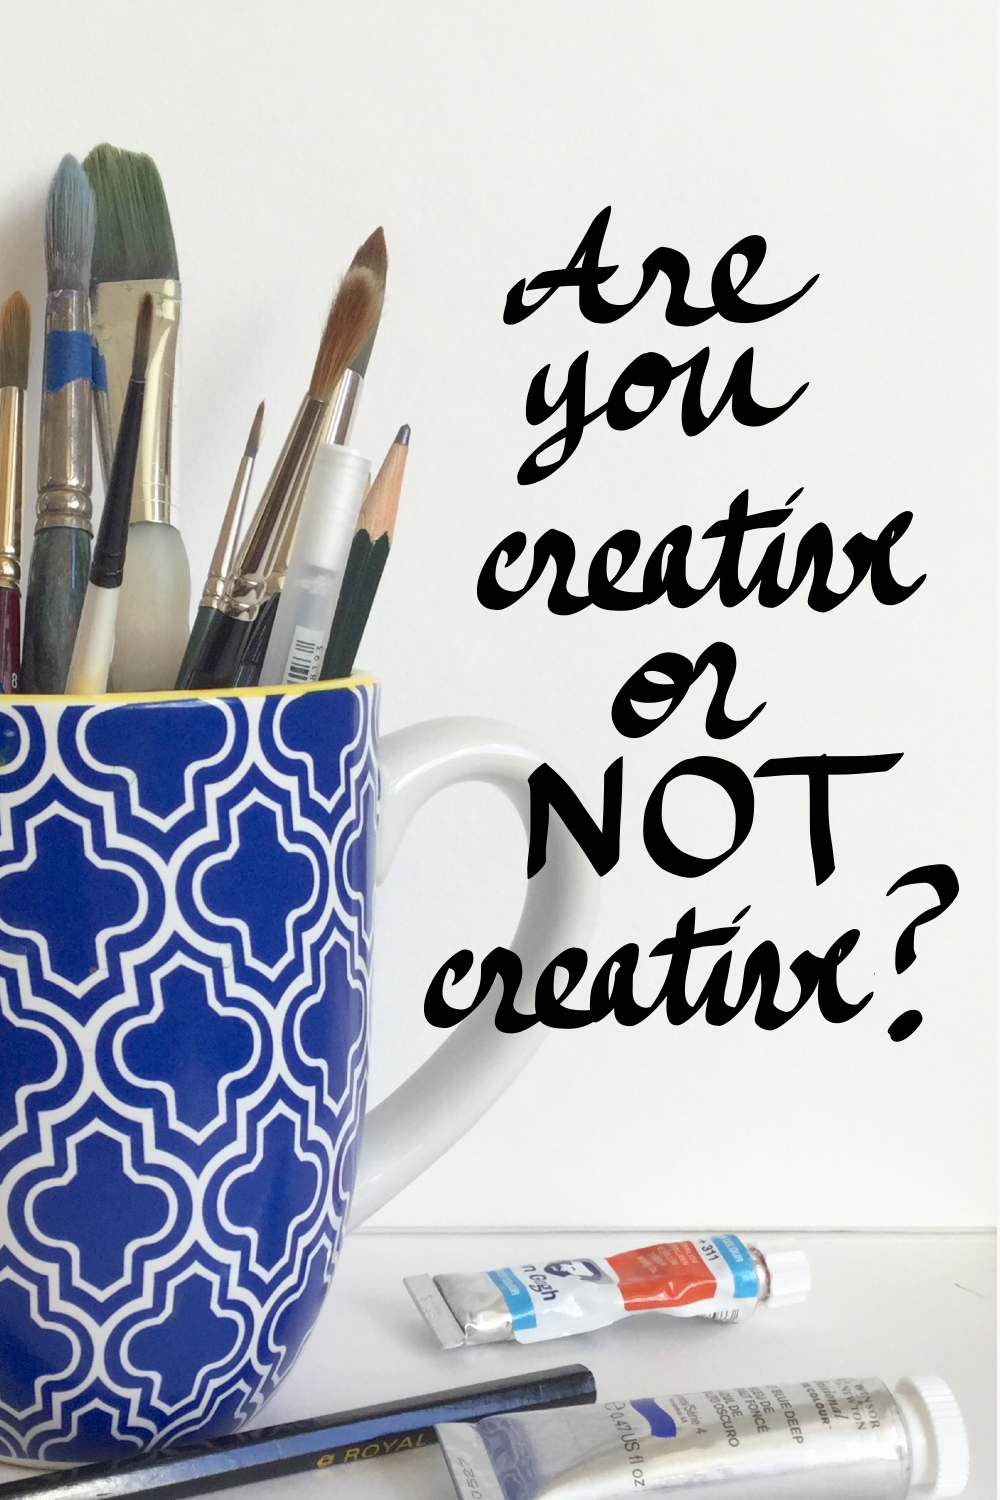 Are you creative or not creative?